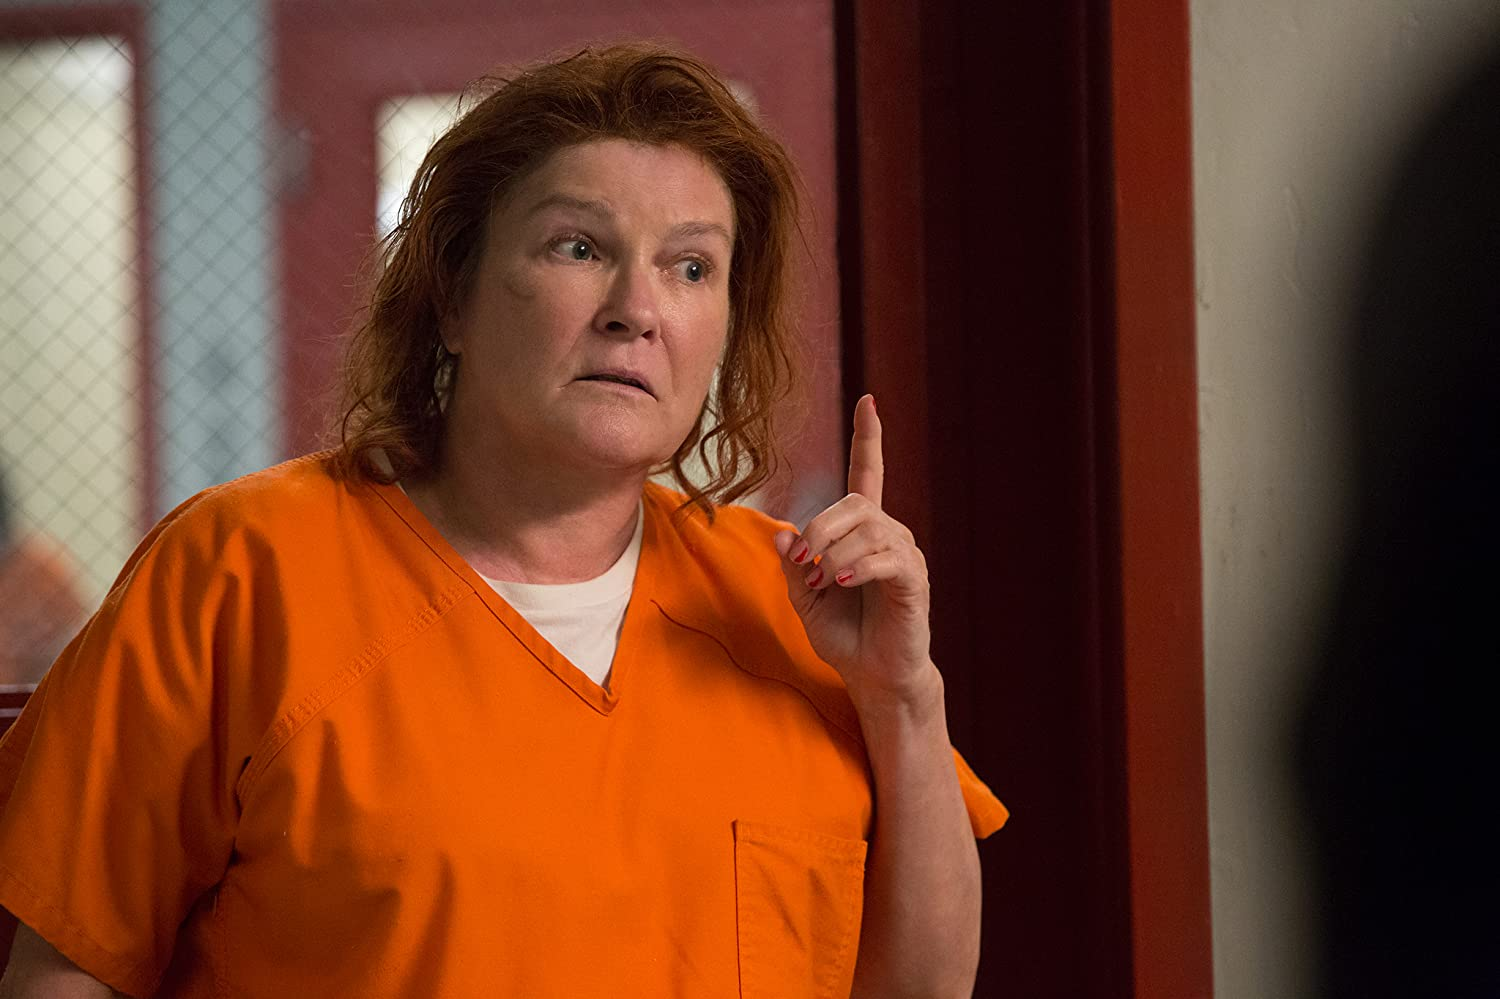 Kate Mulgrew nudes (34 photos), Ass, Cleavage, Twitter, swimsuit 2006